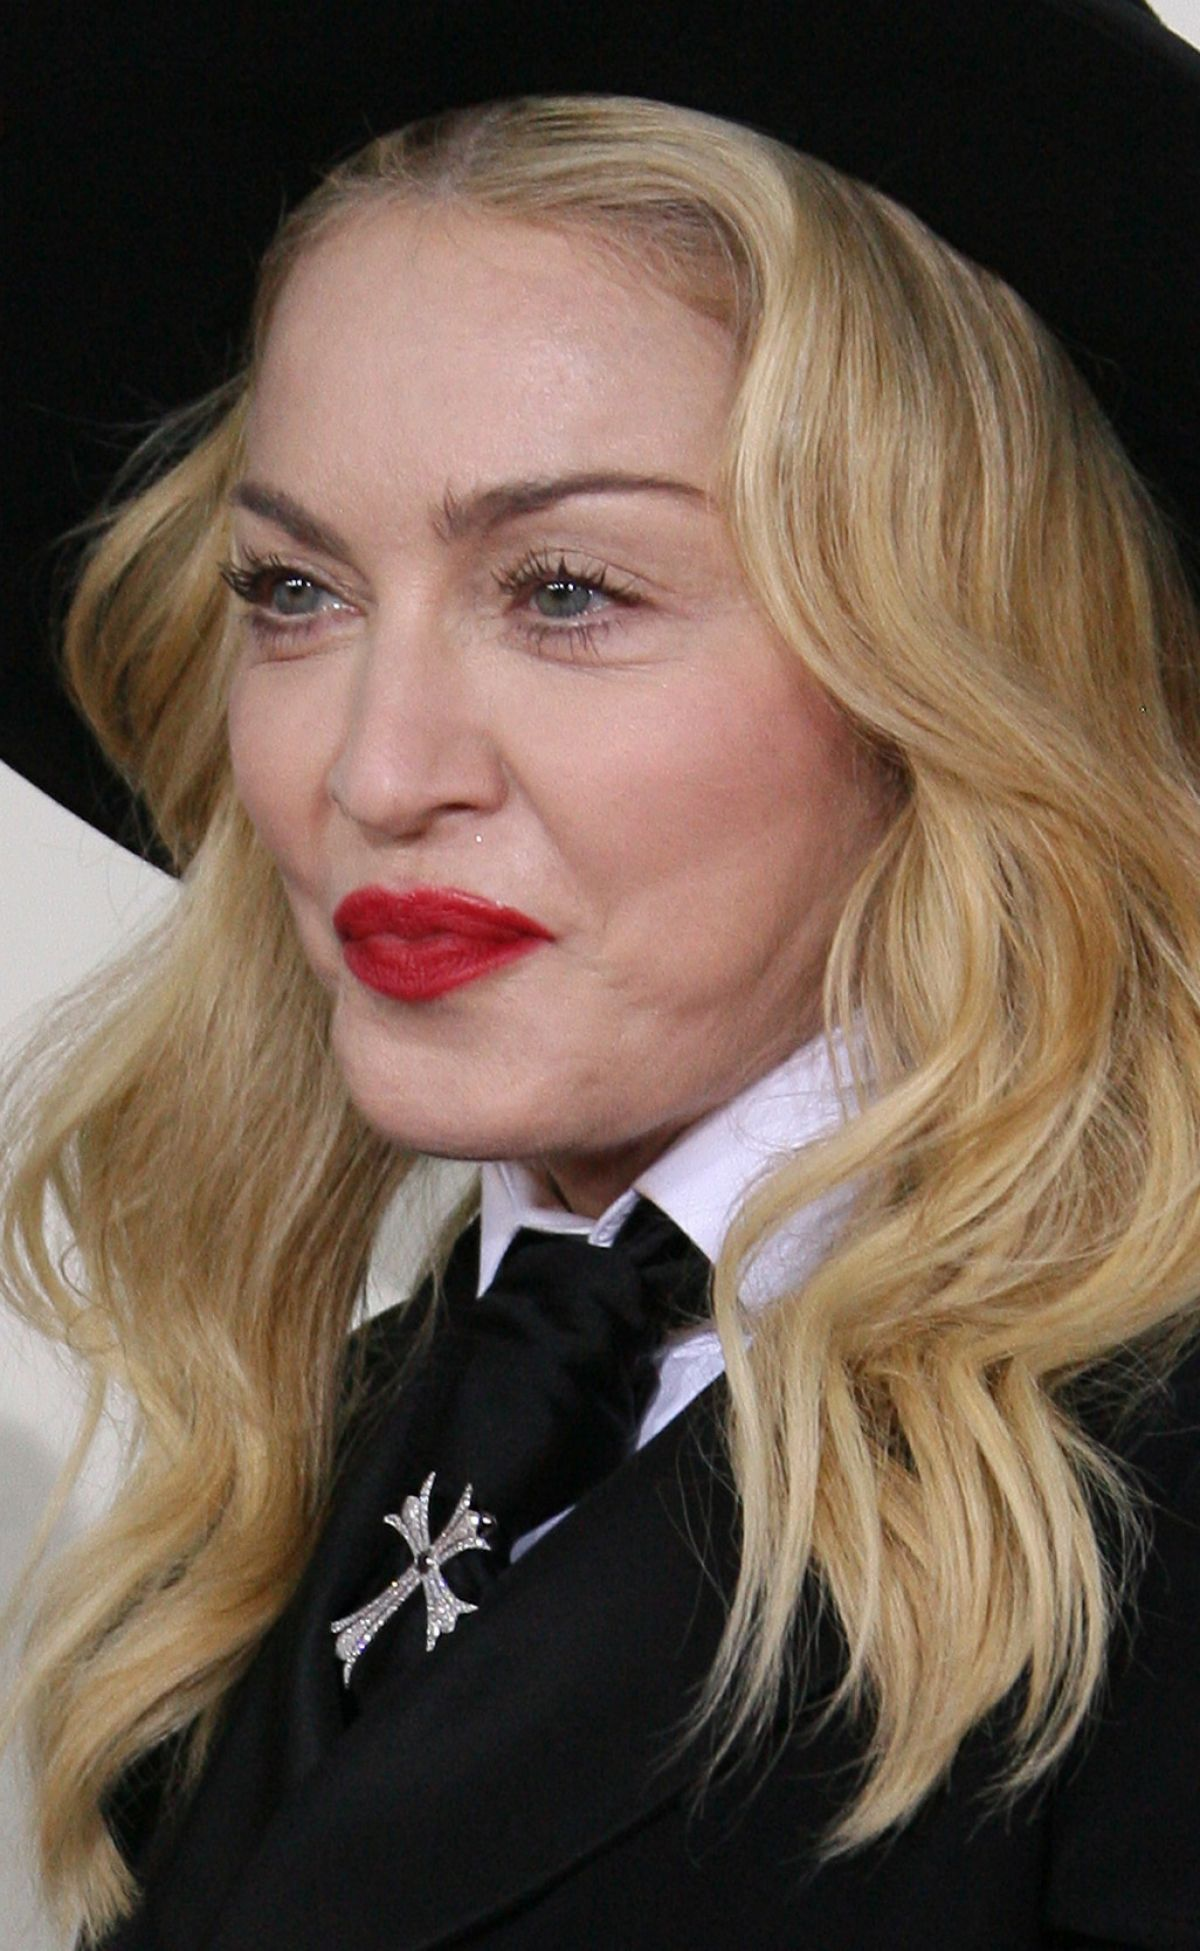 Madonna Grammys Pictures Madonna at 2014 Grammy Awards